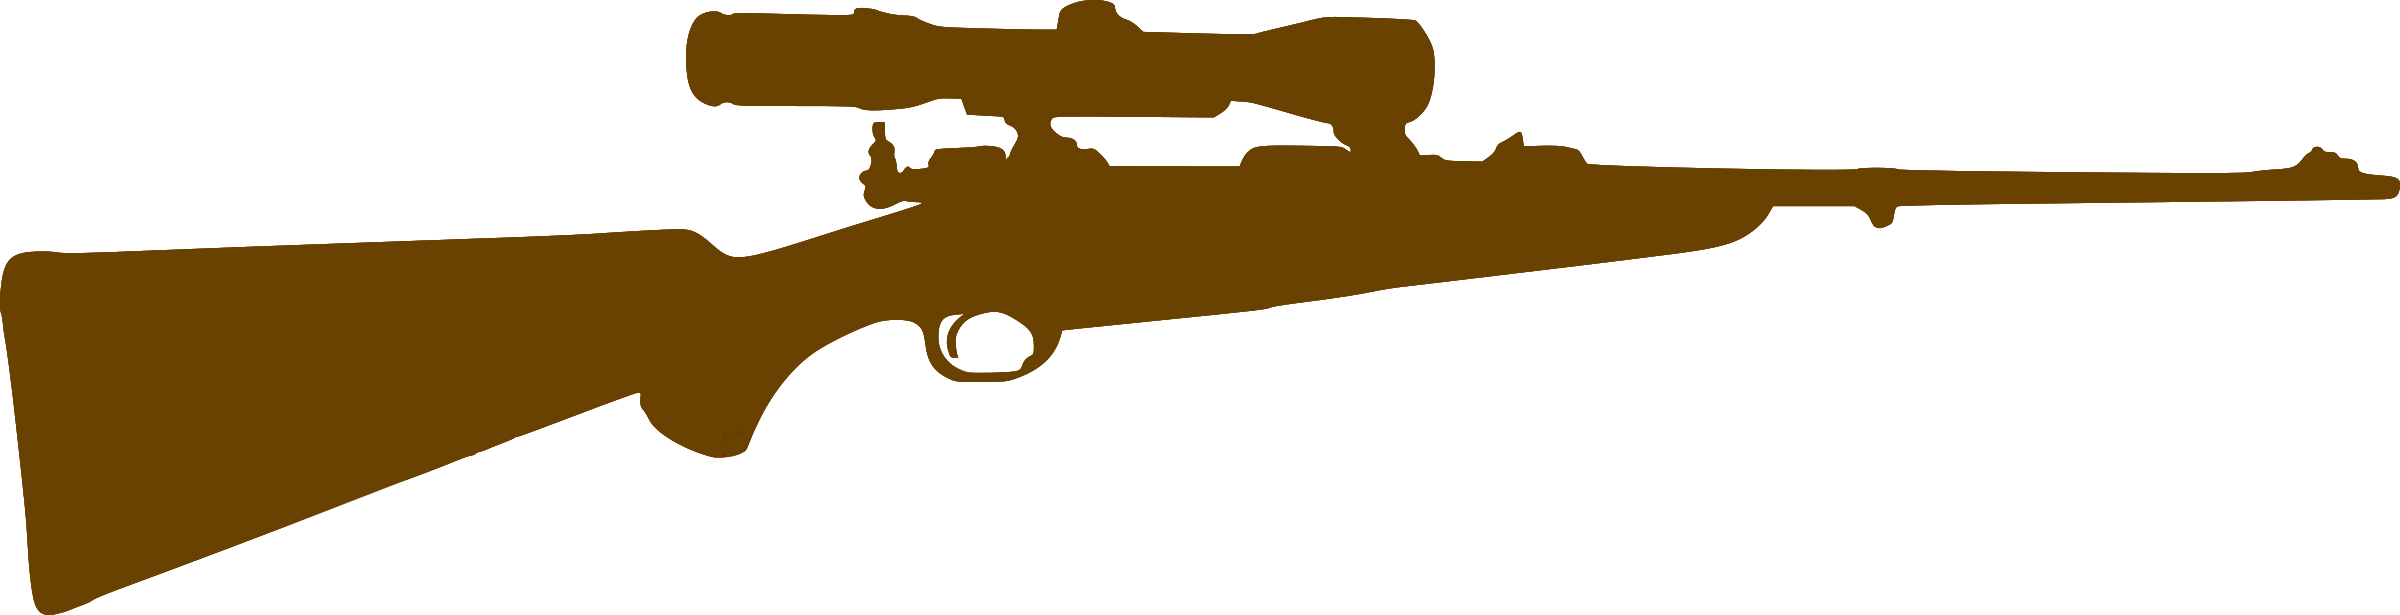 Arme icons png free. Guns clipart silhouette